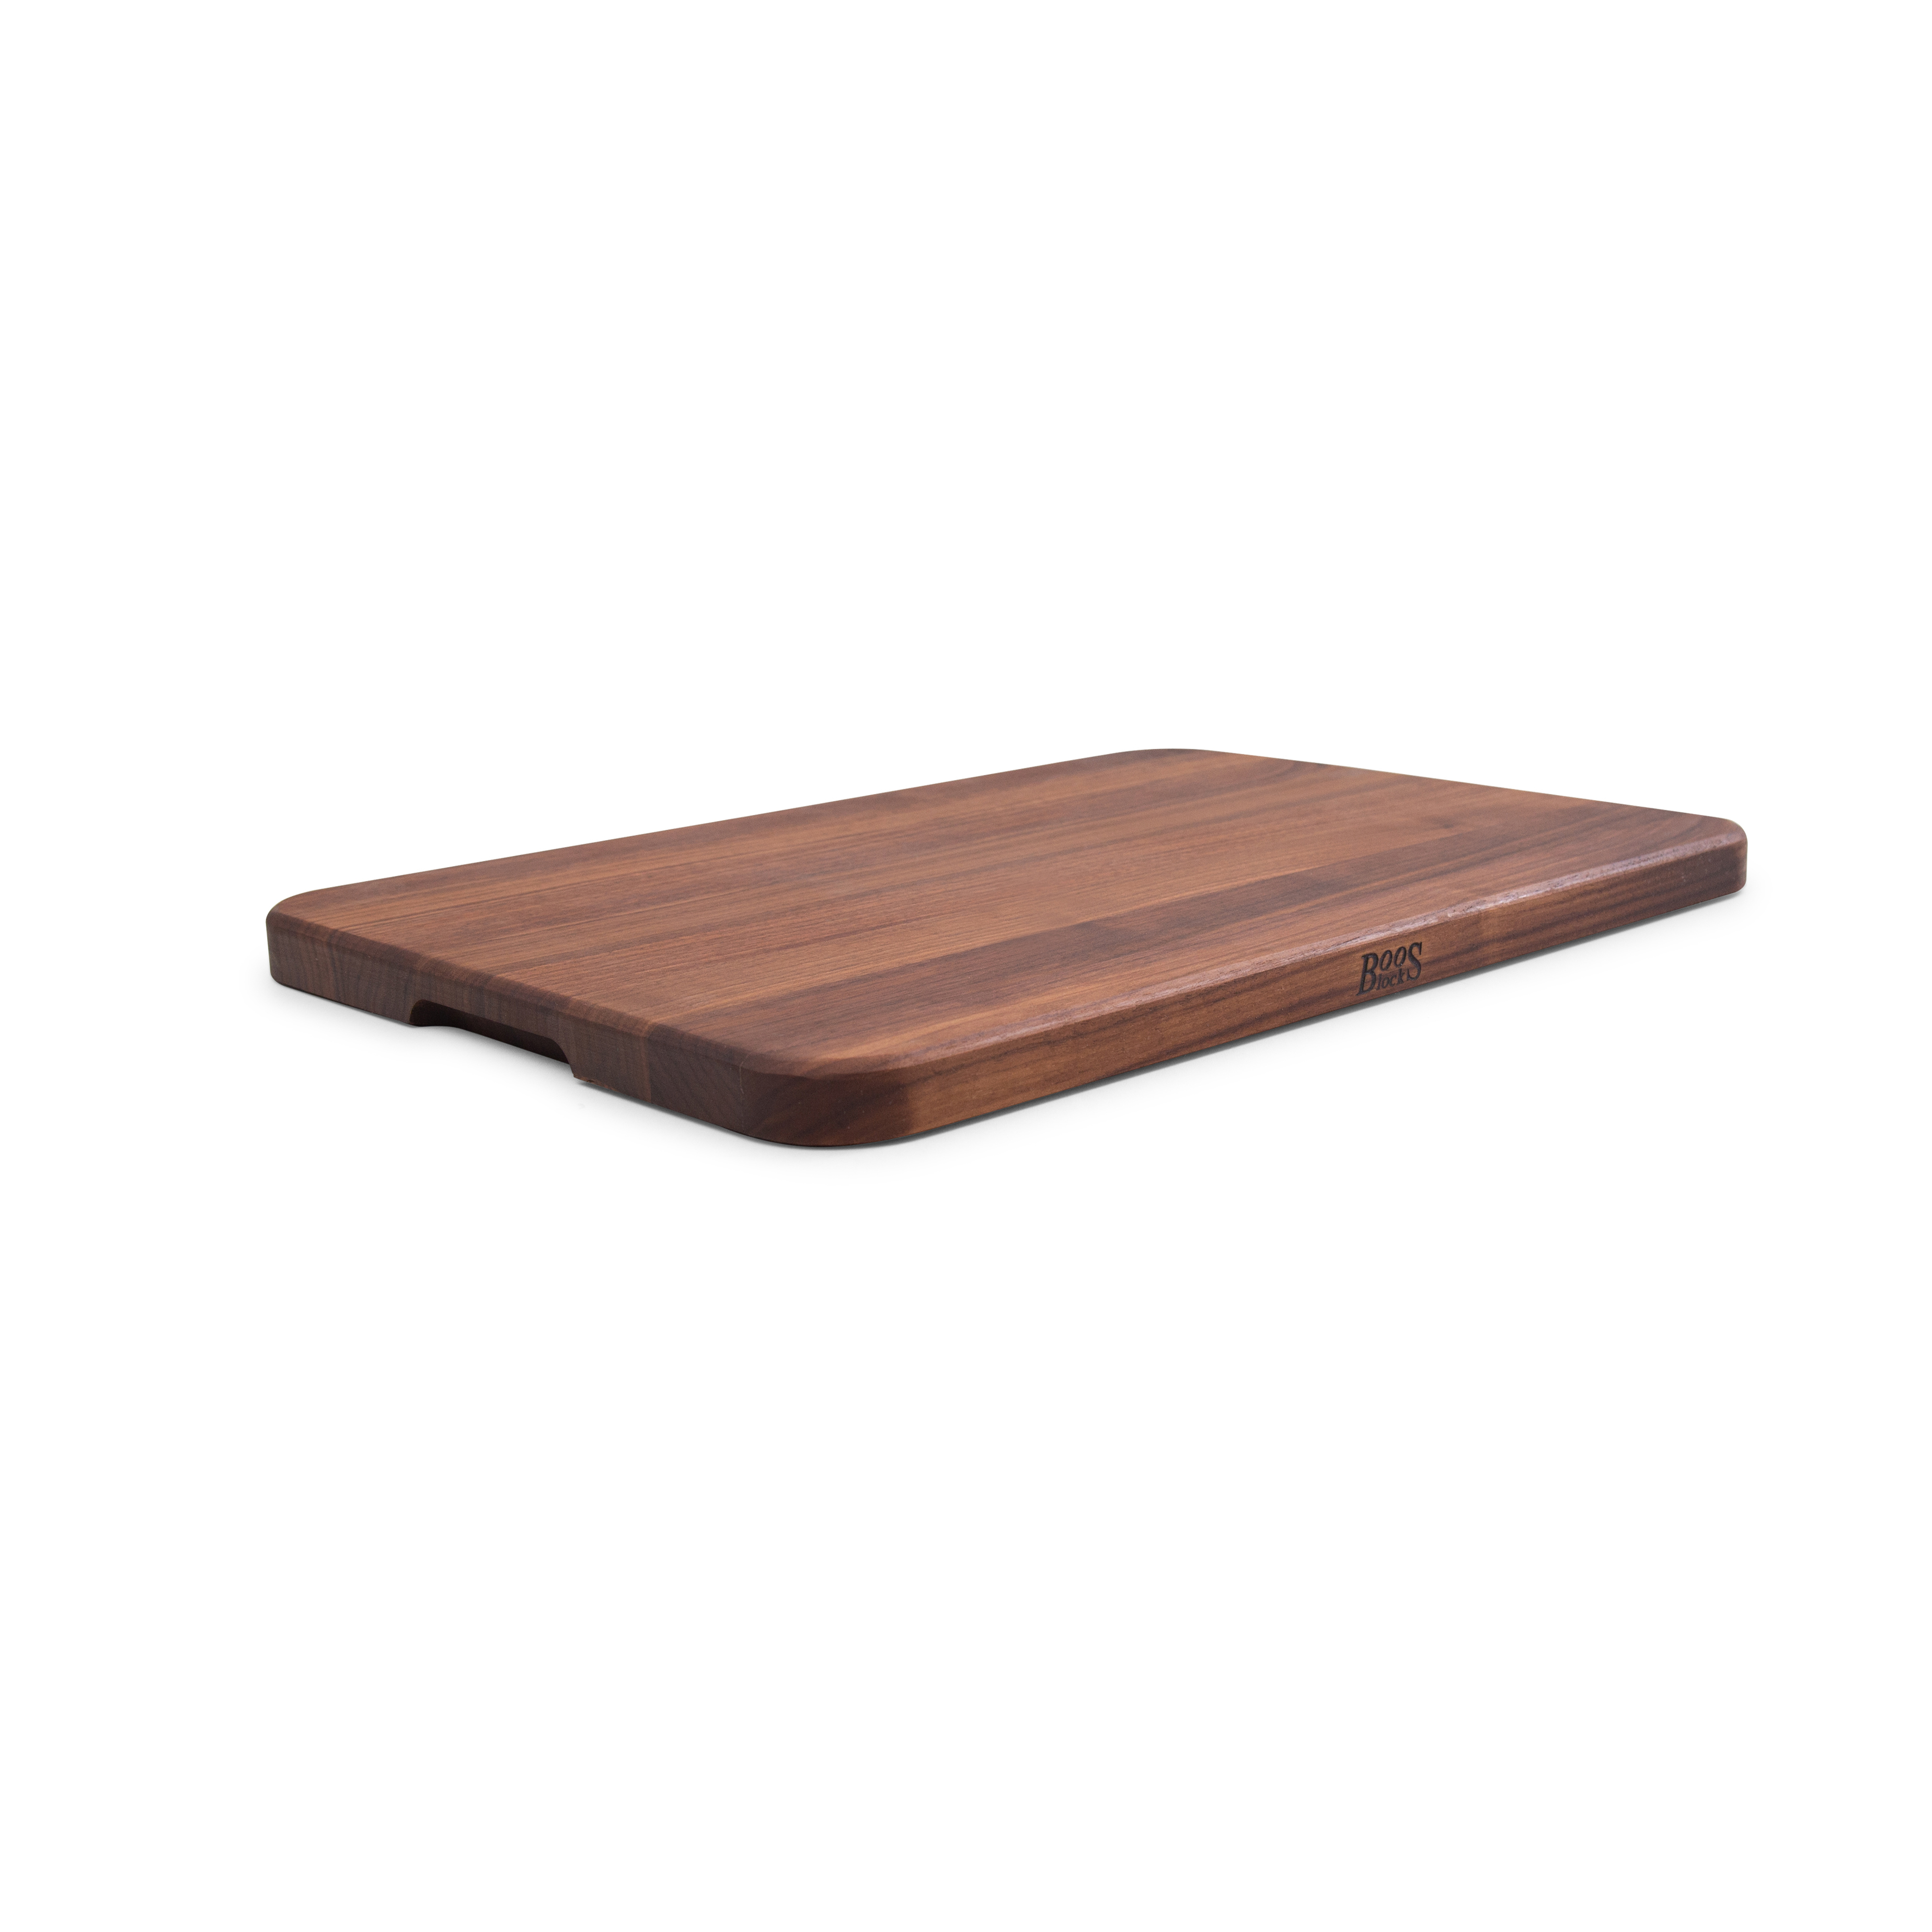 John Boos CB4C-W171201 cutting board, wood